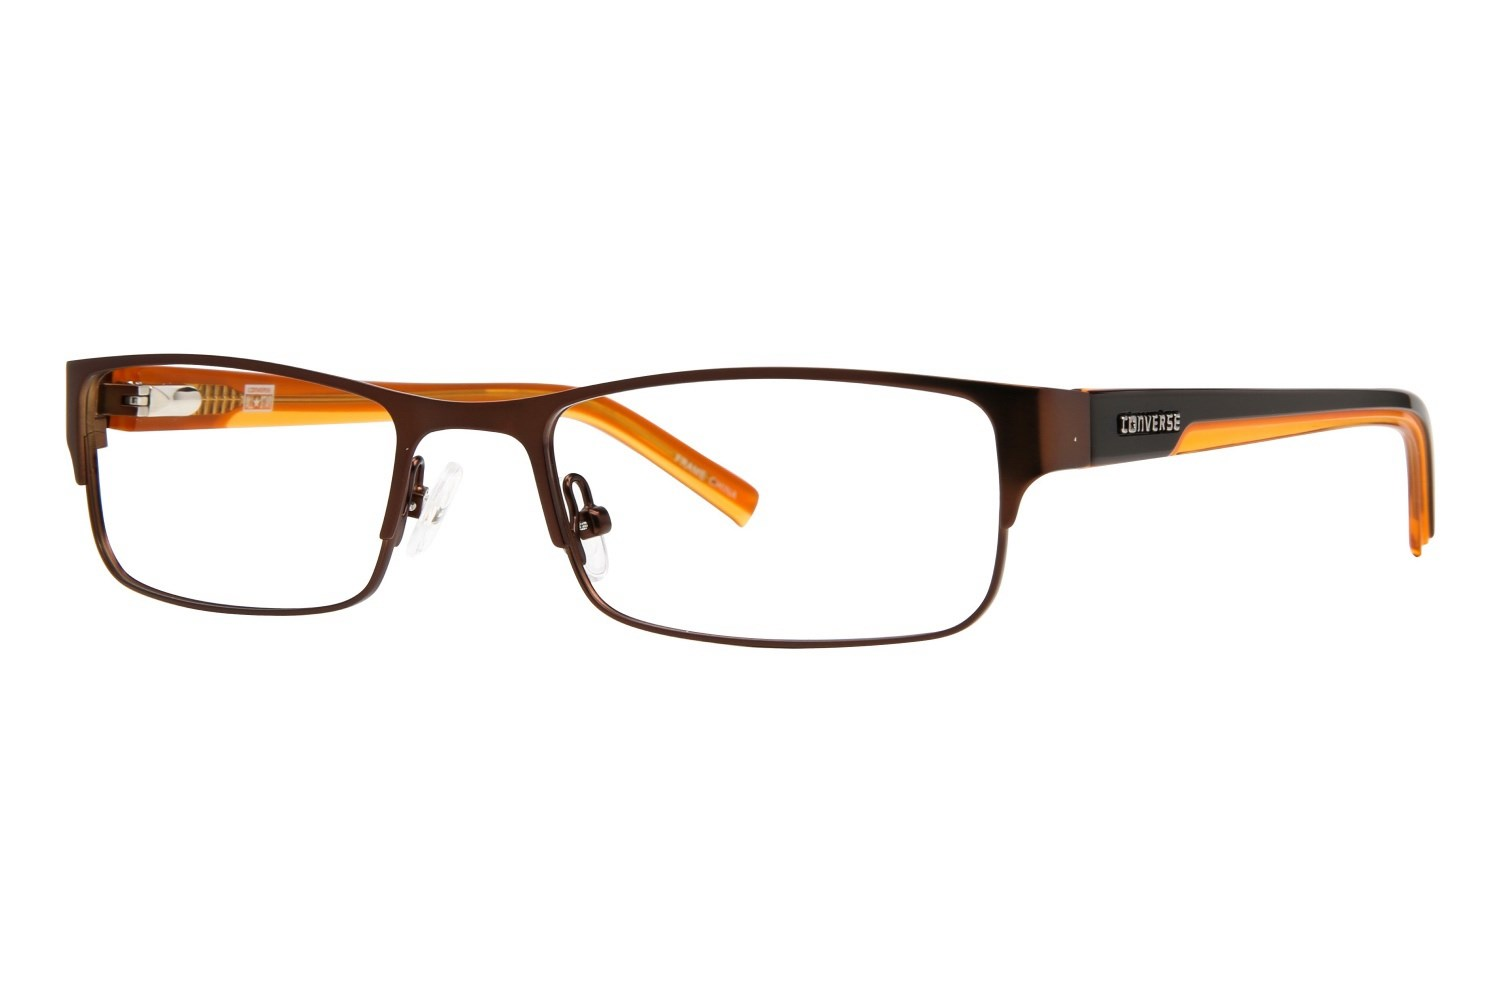 converse-converse-k009-prescription-eyeglasses